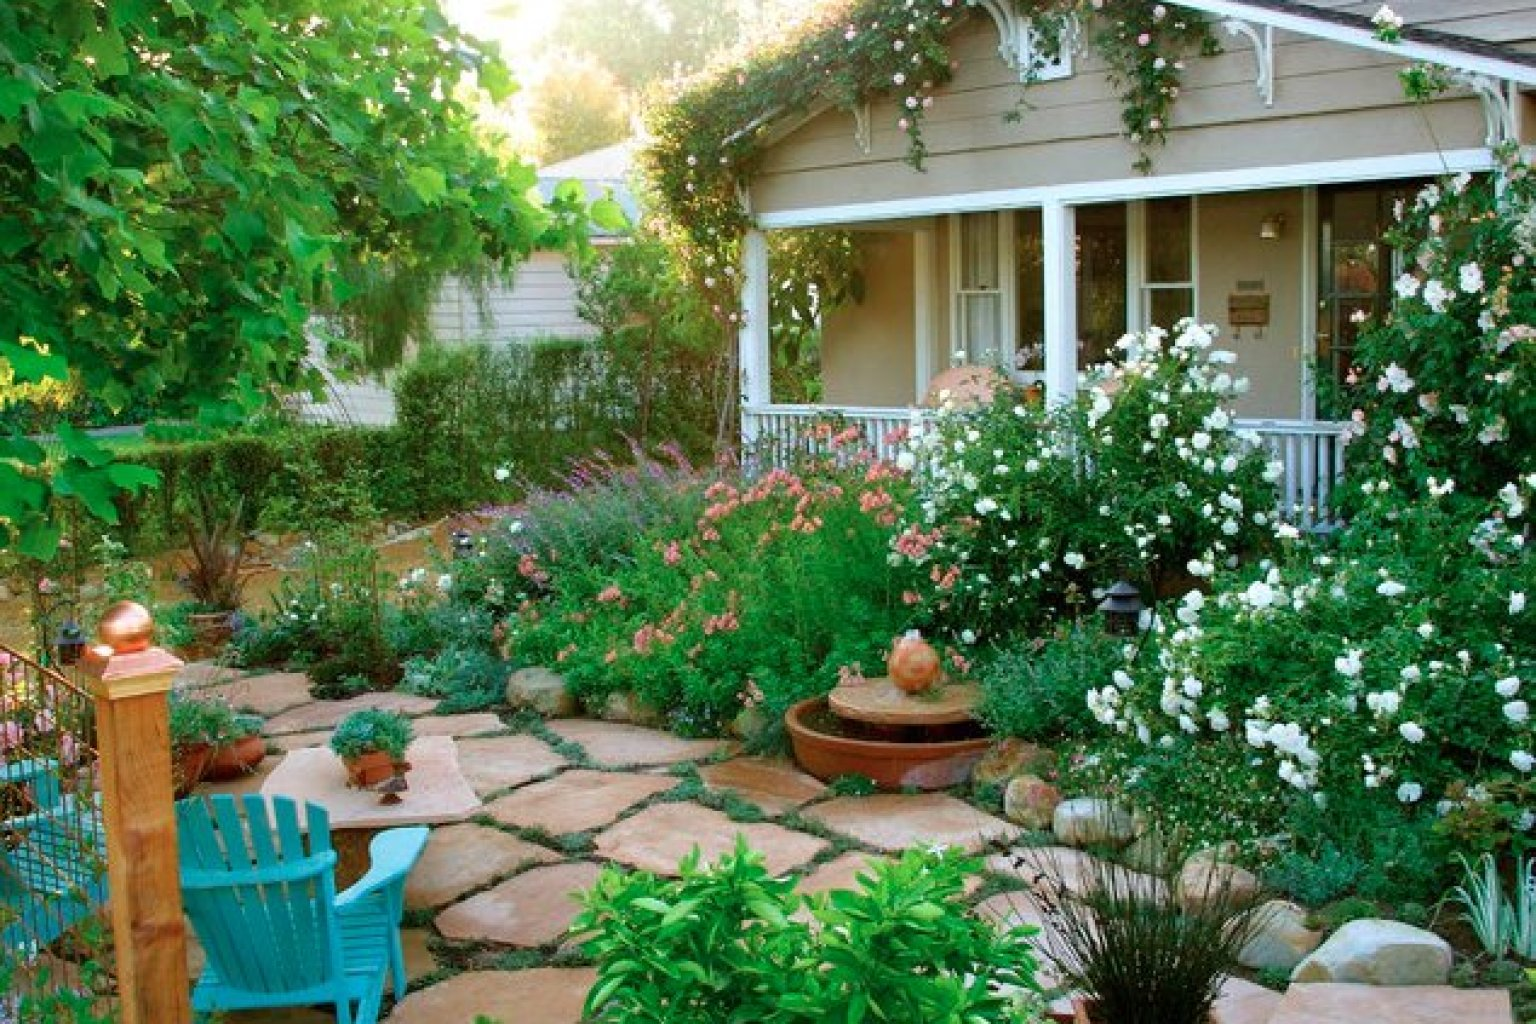 Cottage Style Garden Ideas heres how to create the charming english style garden of your dreams 10 Cottage Gardens That Are Just Too Charming For Words Photos Huffpost